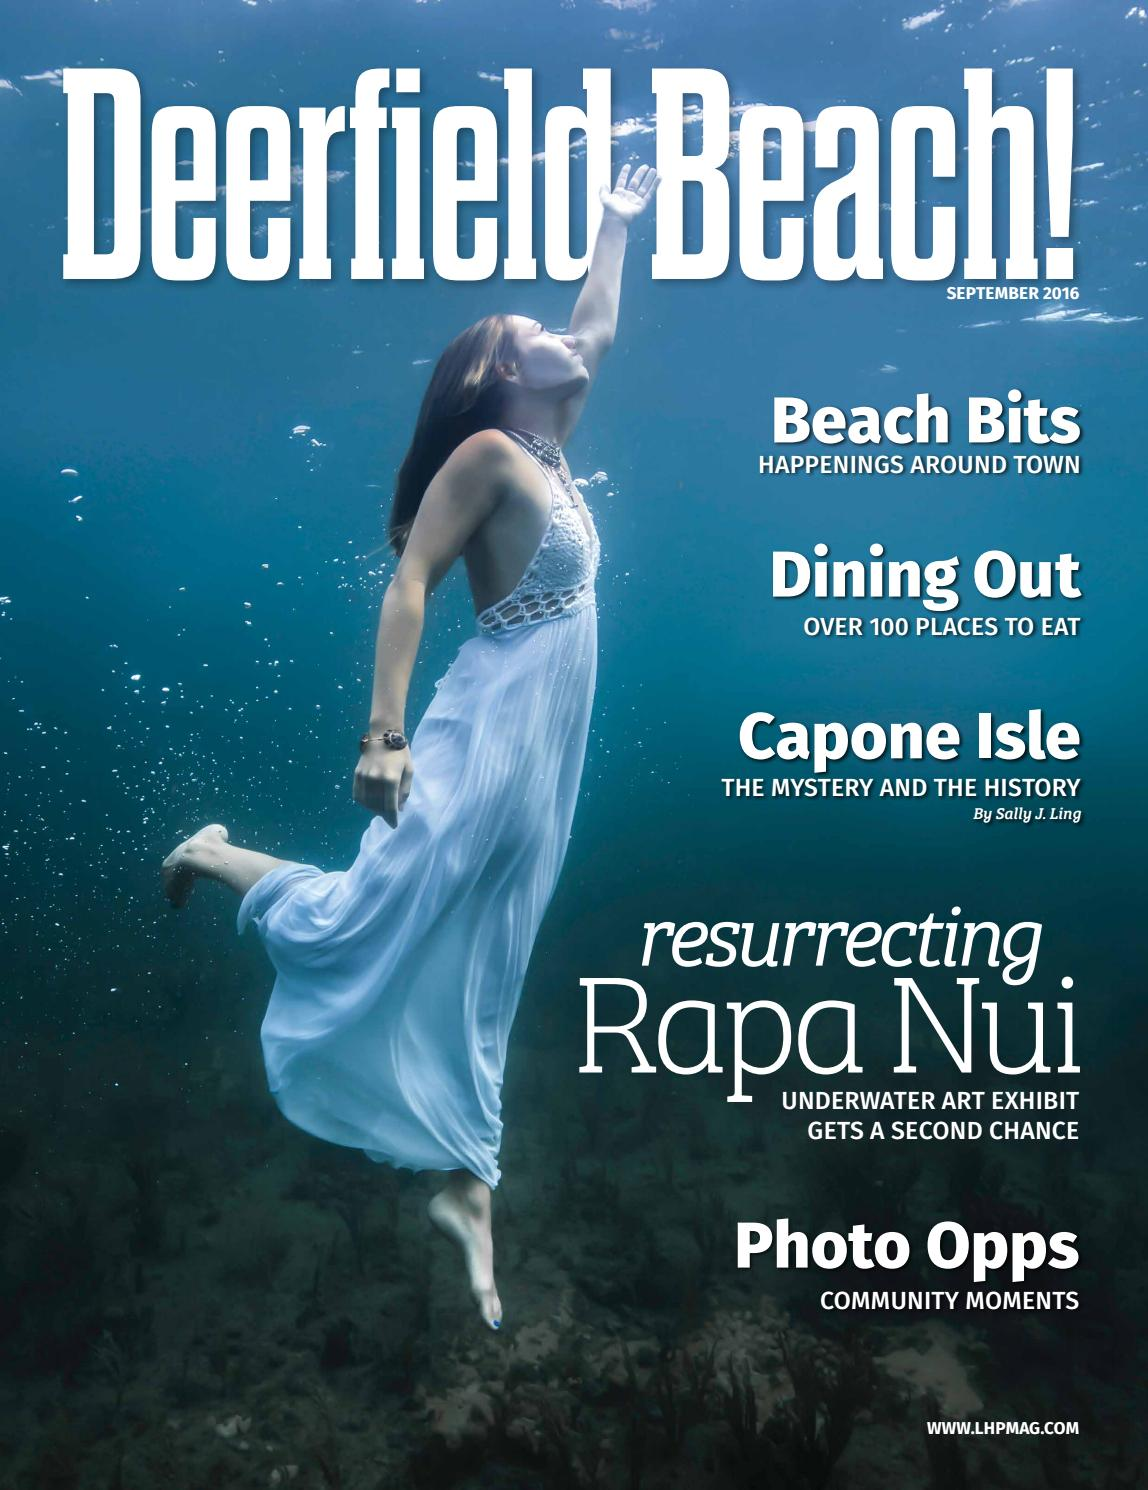 Deerfield Beach! Magazine Premiere Issue, Sept. 2016 by Point ...